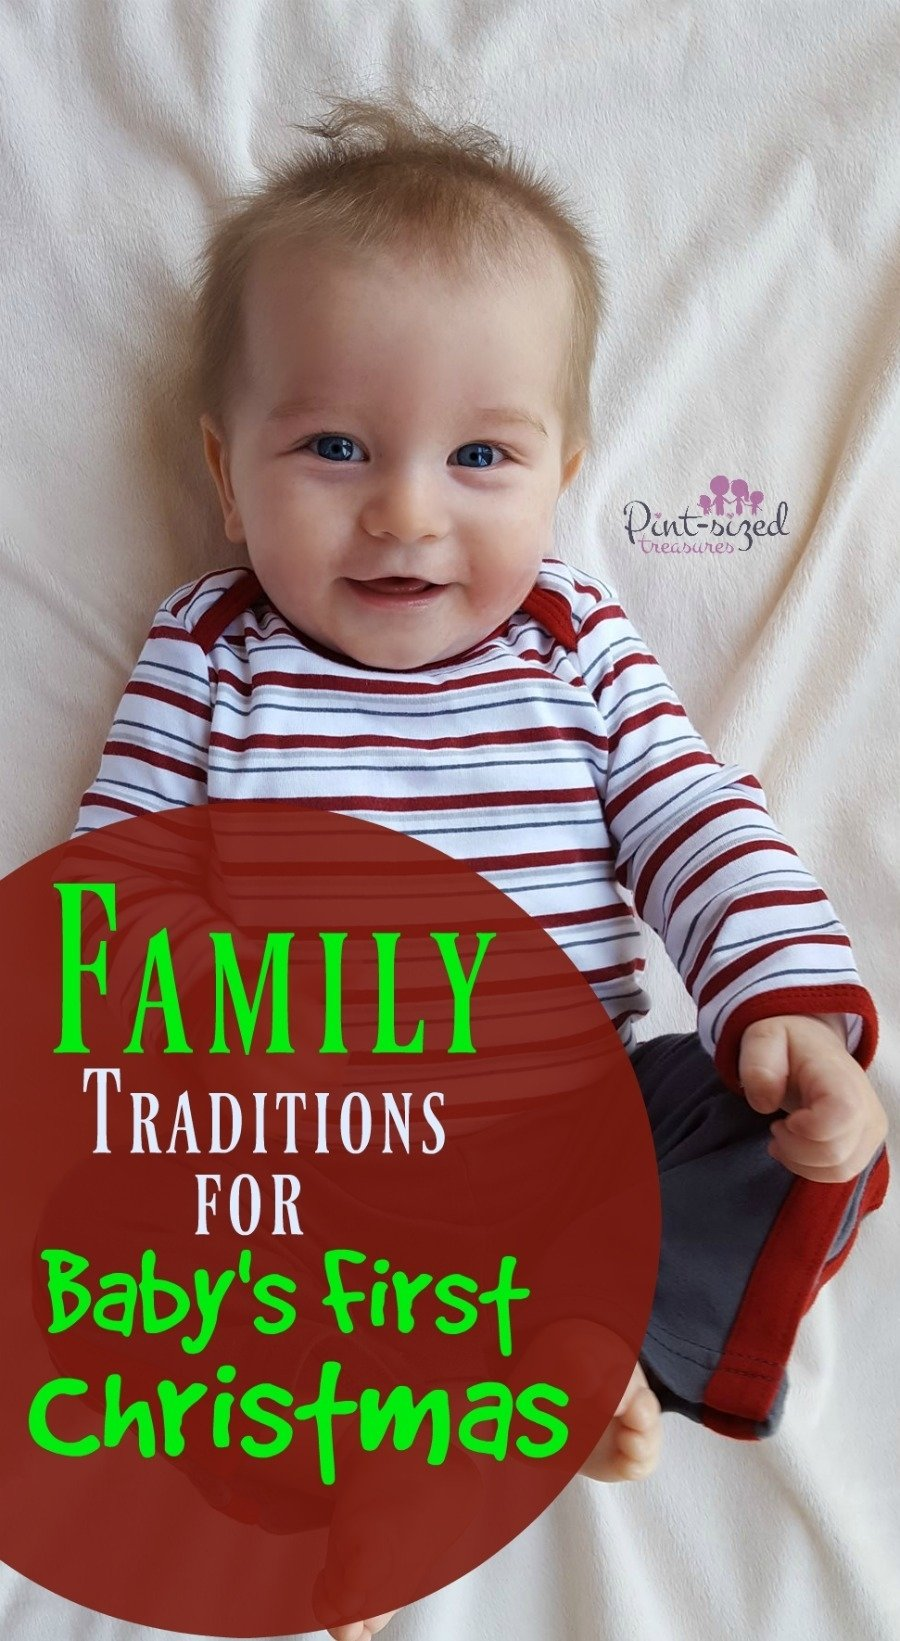 10 Trendy Family Christmas Photo Ideas With Baby family traditions for your babys first christmas c2b7 pint sized treasures 3